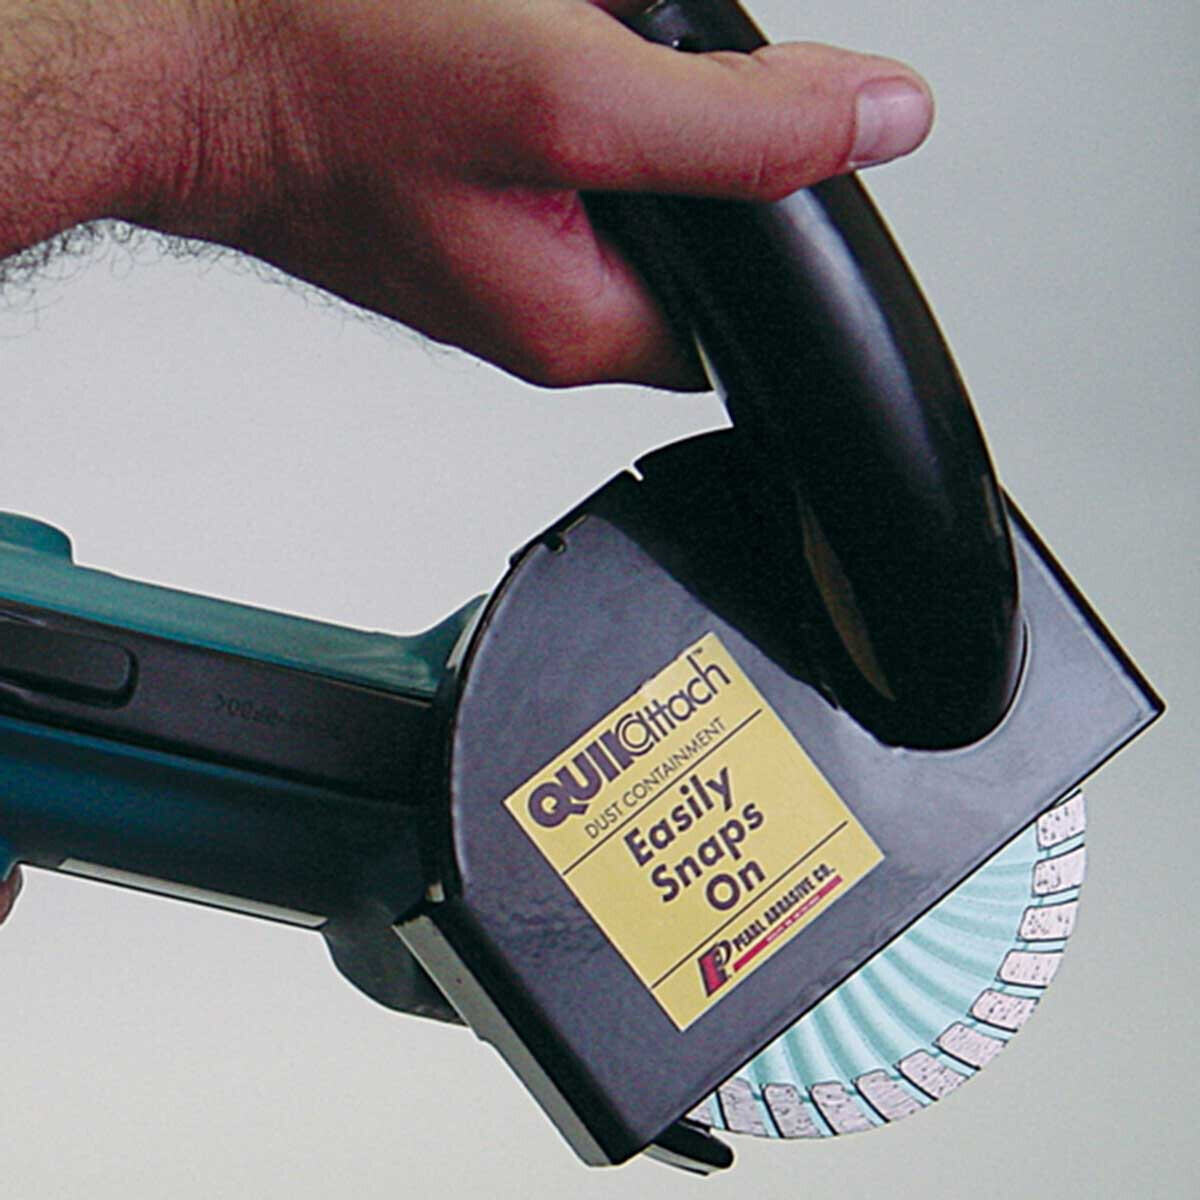 VACCUT45 Easily Snaps On Angle Grinder